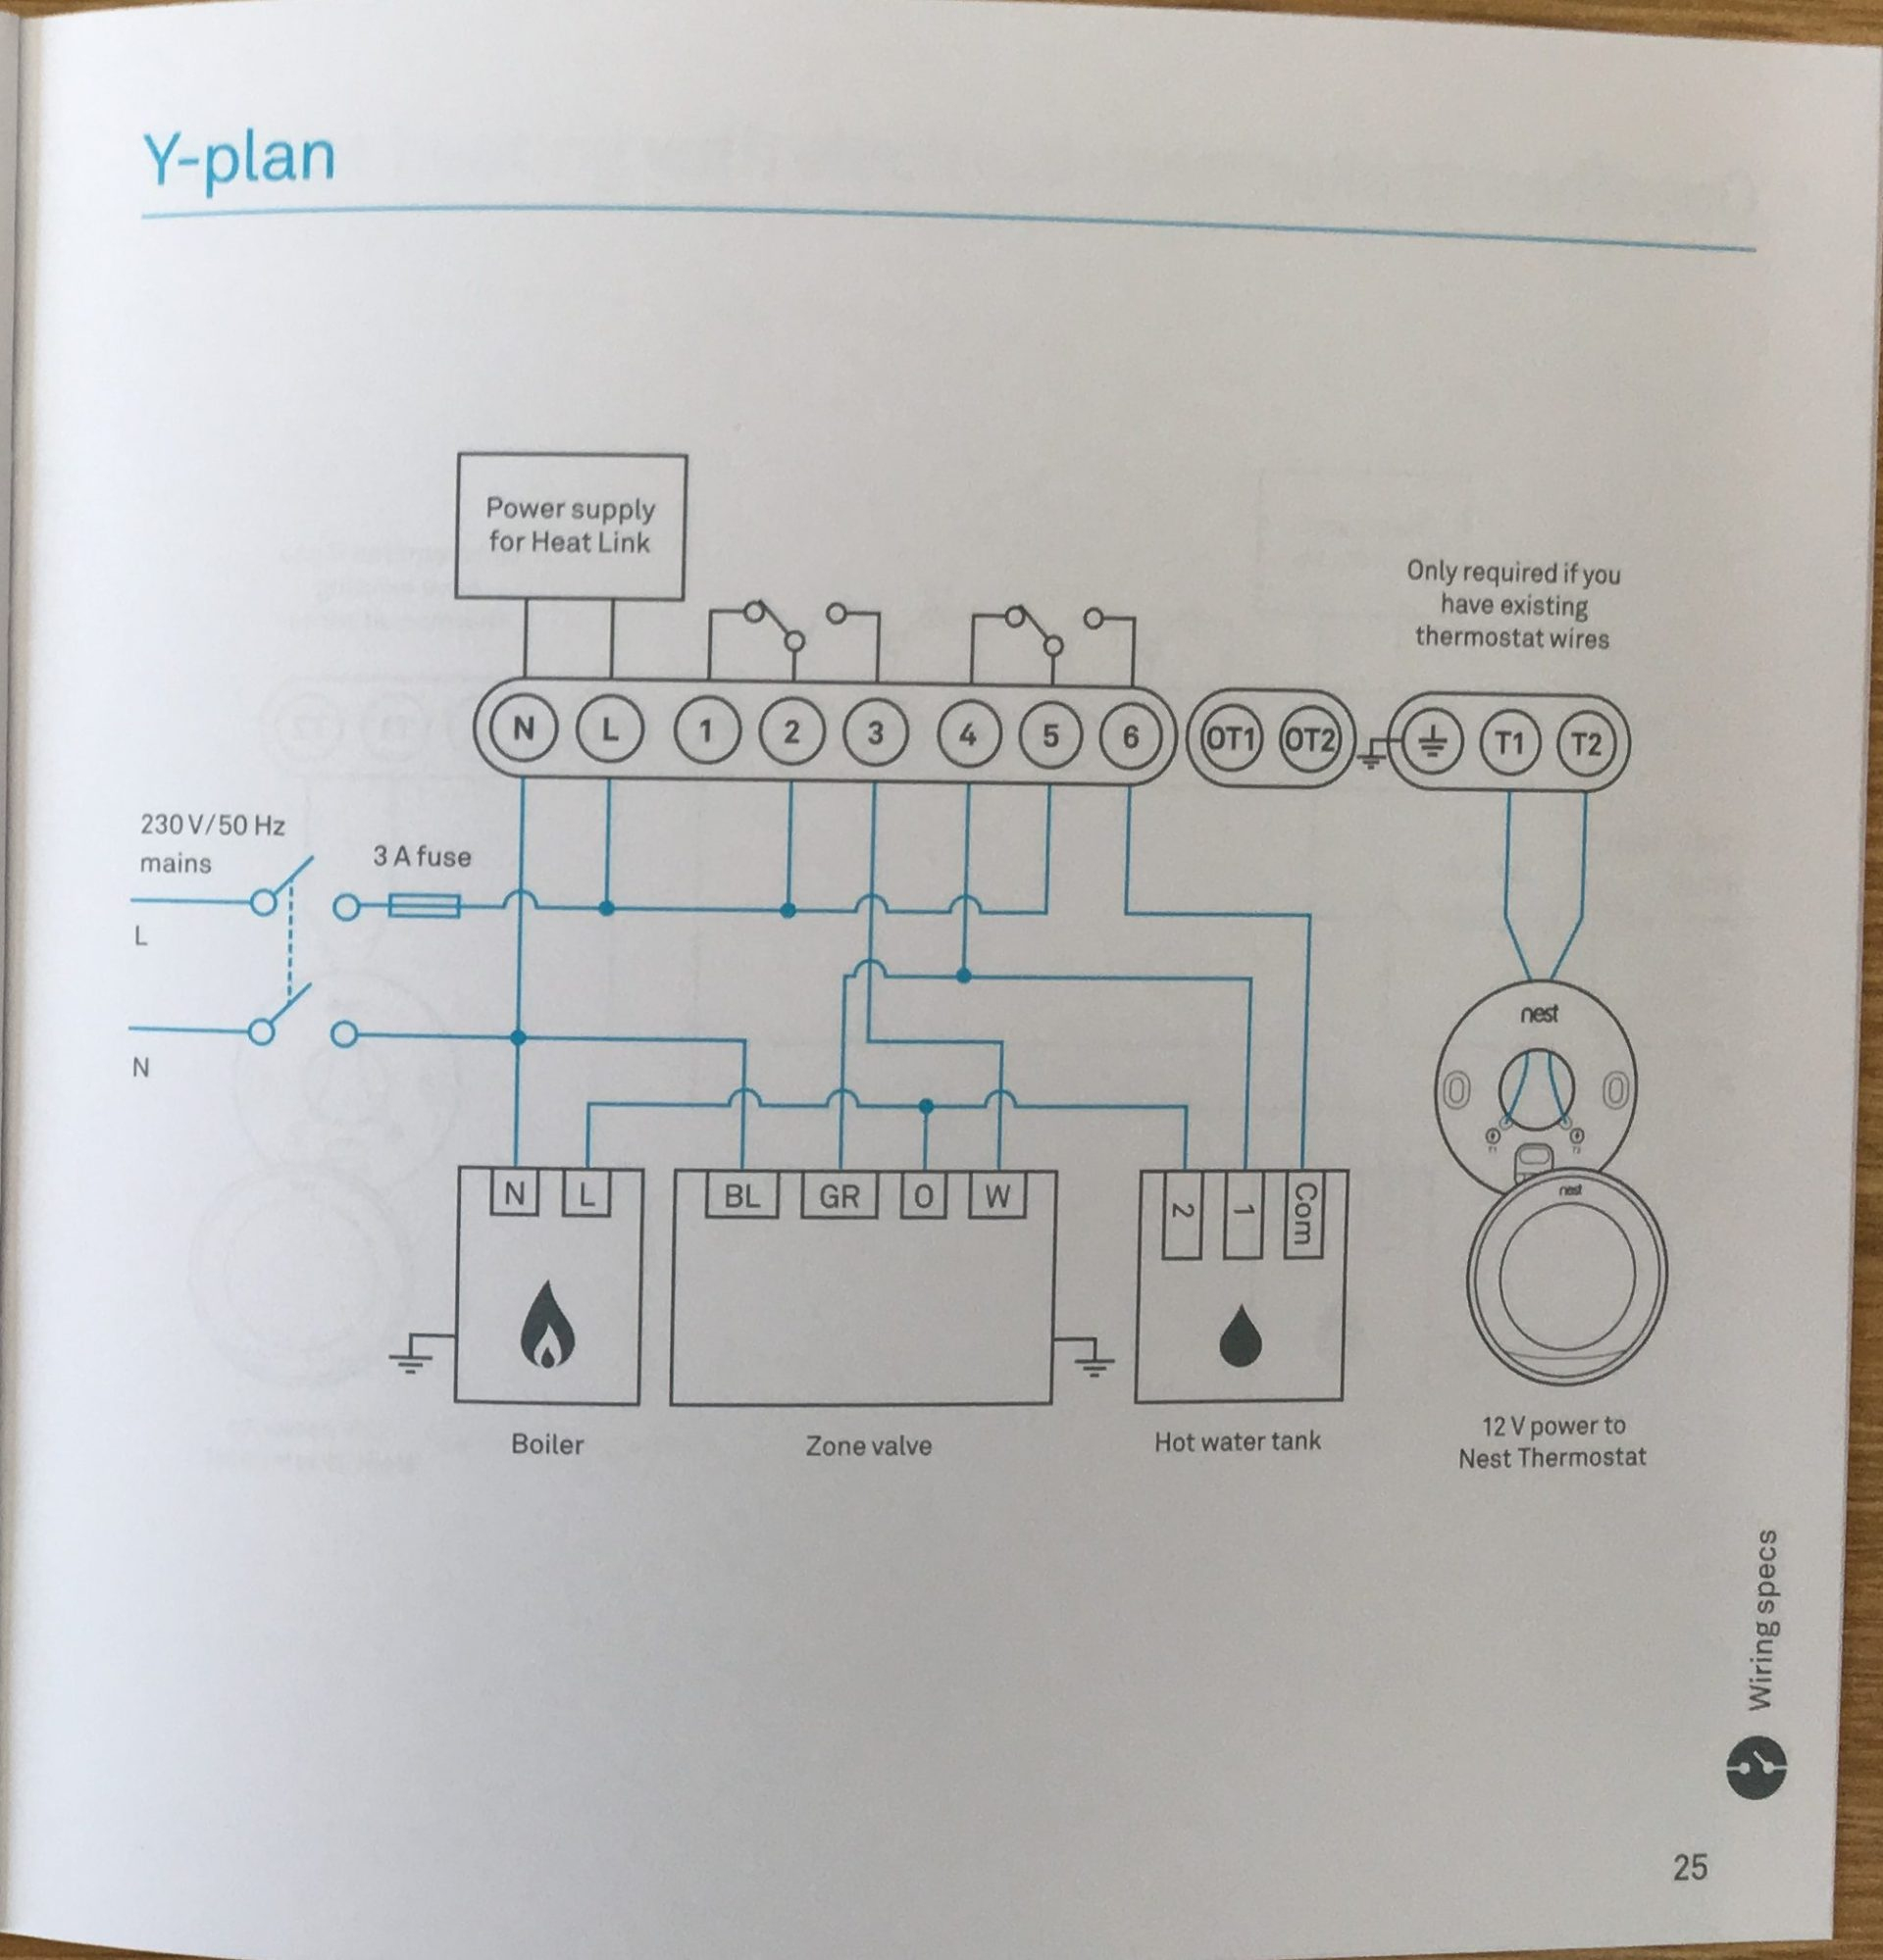 How To Install The Nest Learning Thermostat (3Rd Gen) In A Y-Plan - Nest Wiring Diagram Aux Heat